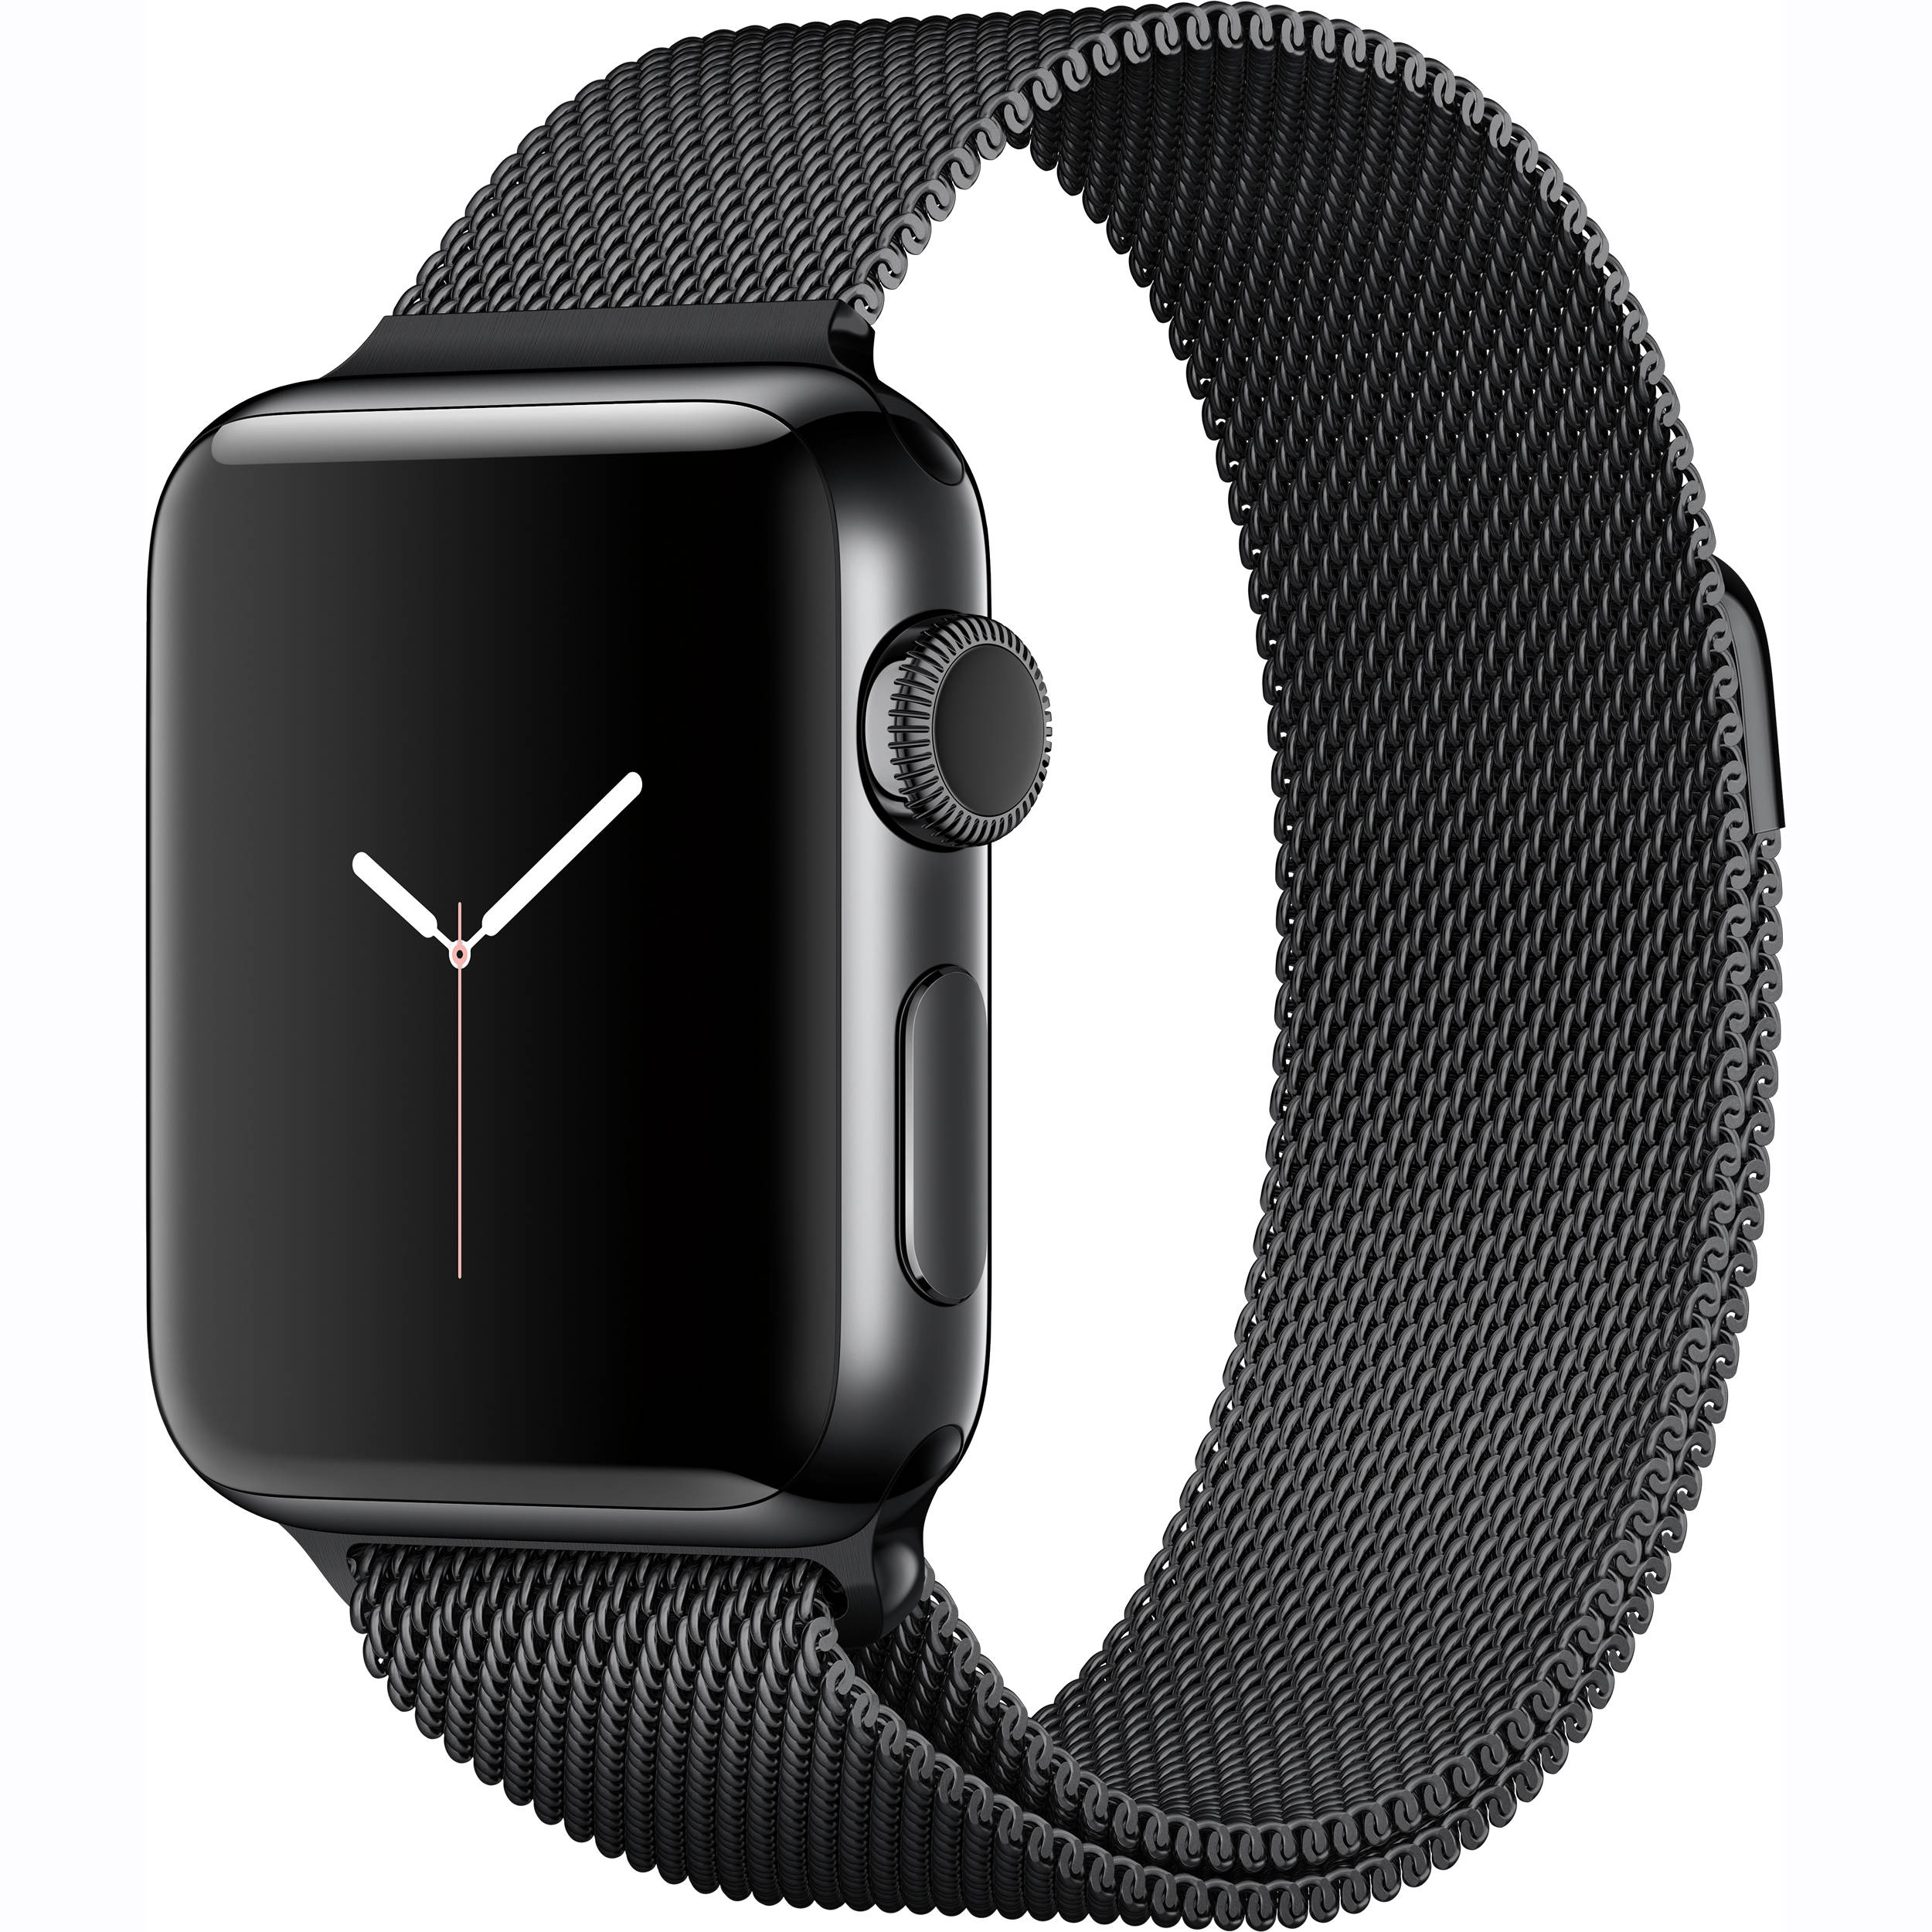 purchase cheap be0db 19afe Apple Watch Series 2 38mm Smartwatch (Space Black Stainless Steel Case,  Space Black Milanese Loop Band)